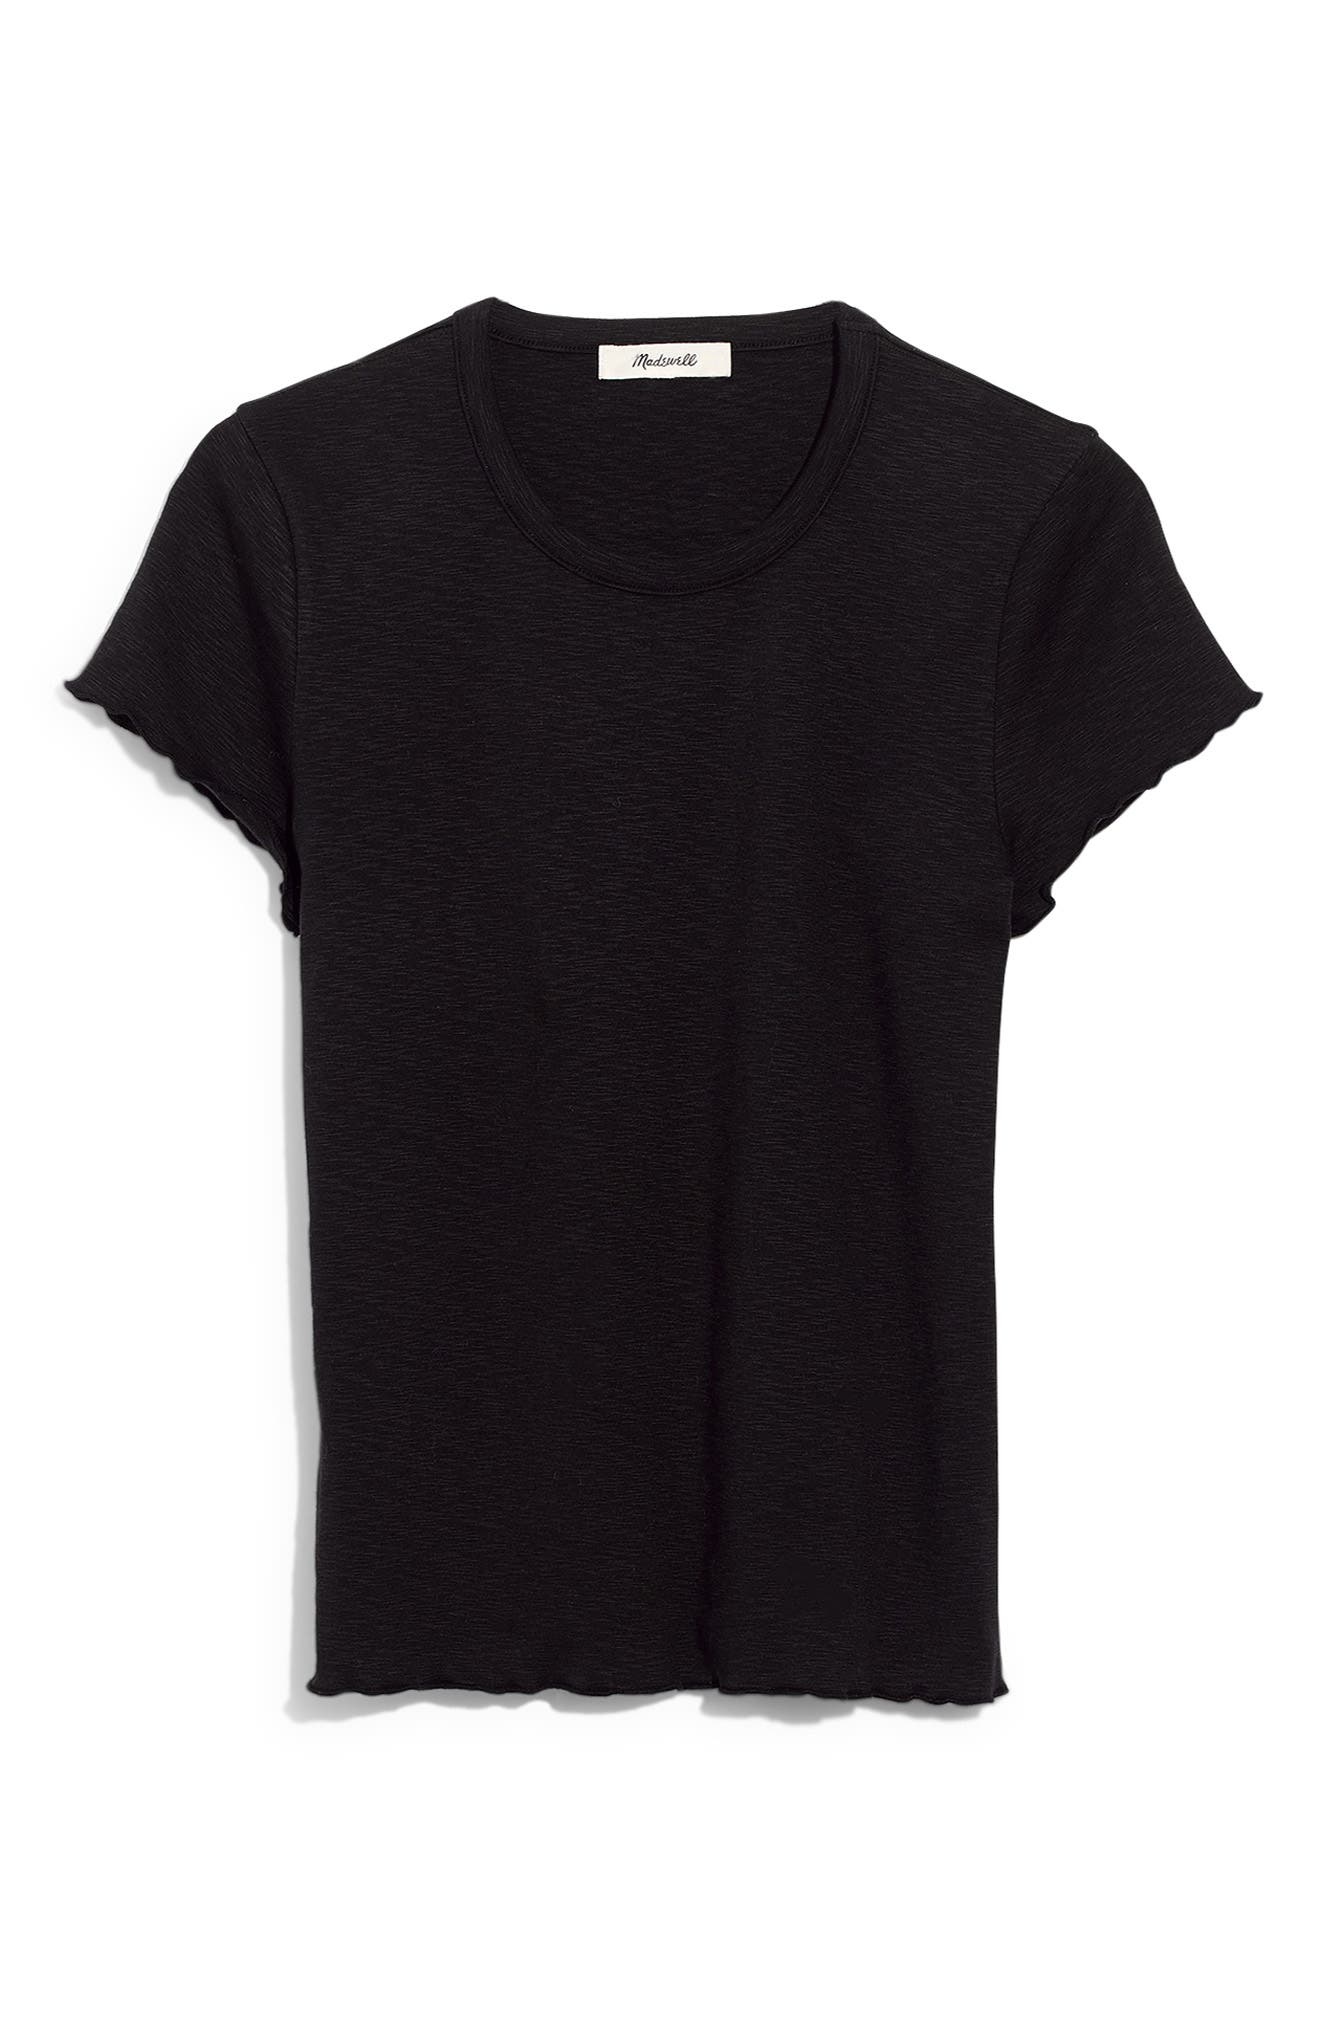 Baby Tee by Madewell